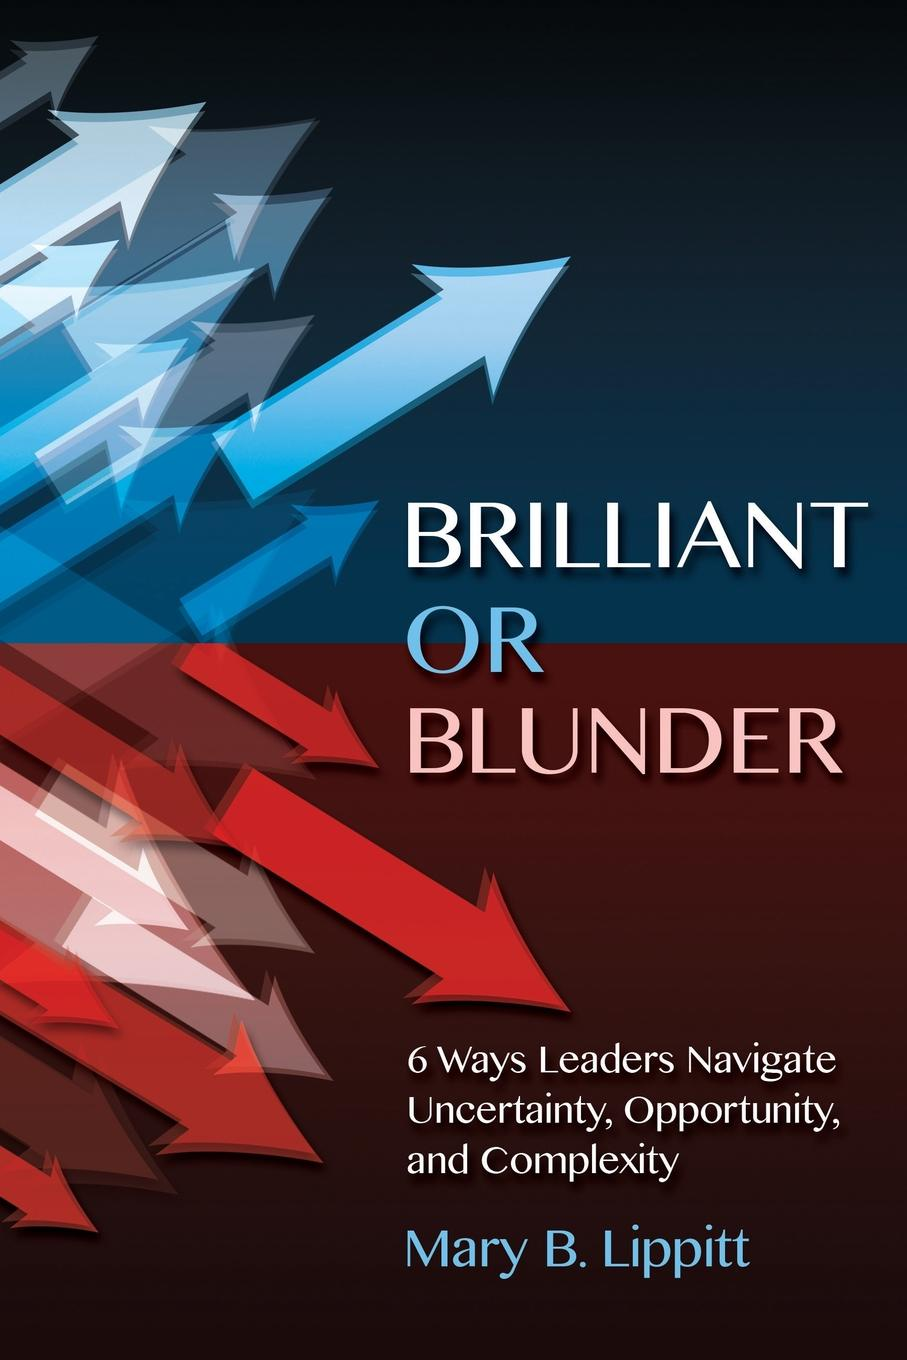 Mary Lippitt Brilliant or Blunder. 6 Ways Leaders Navigate Uncertainty, Opportunity and Complexity suzanne morse w smart communities how citizens and local leaders can use strategic thinking to build a brighter future